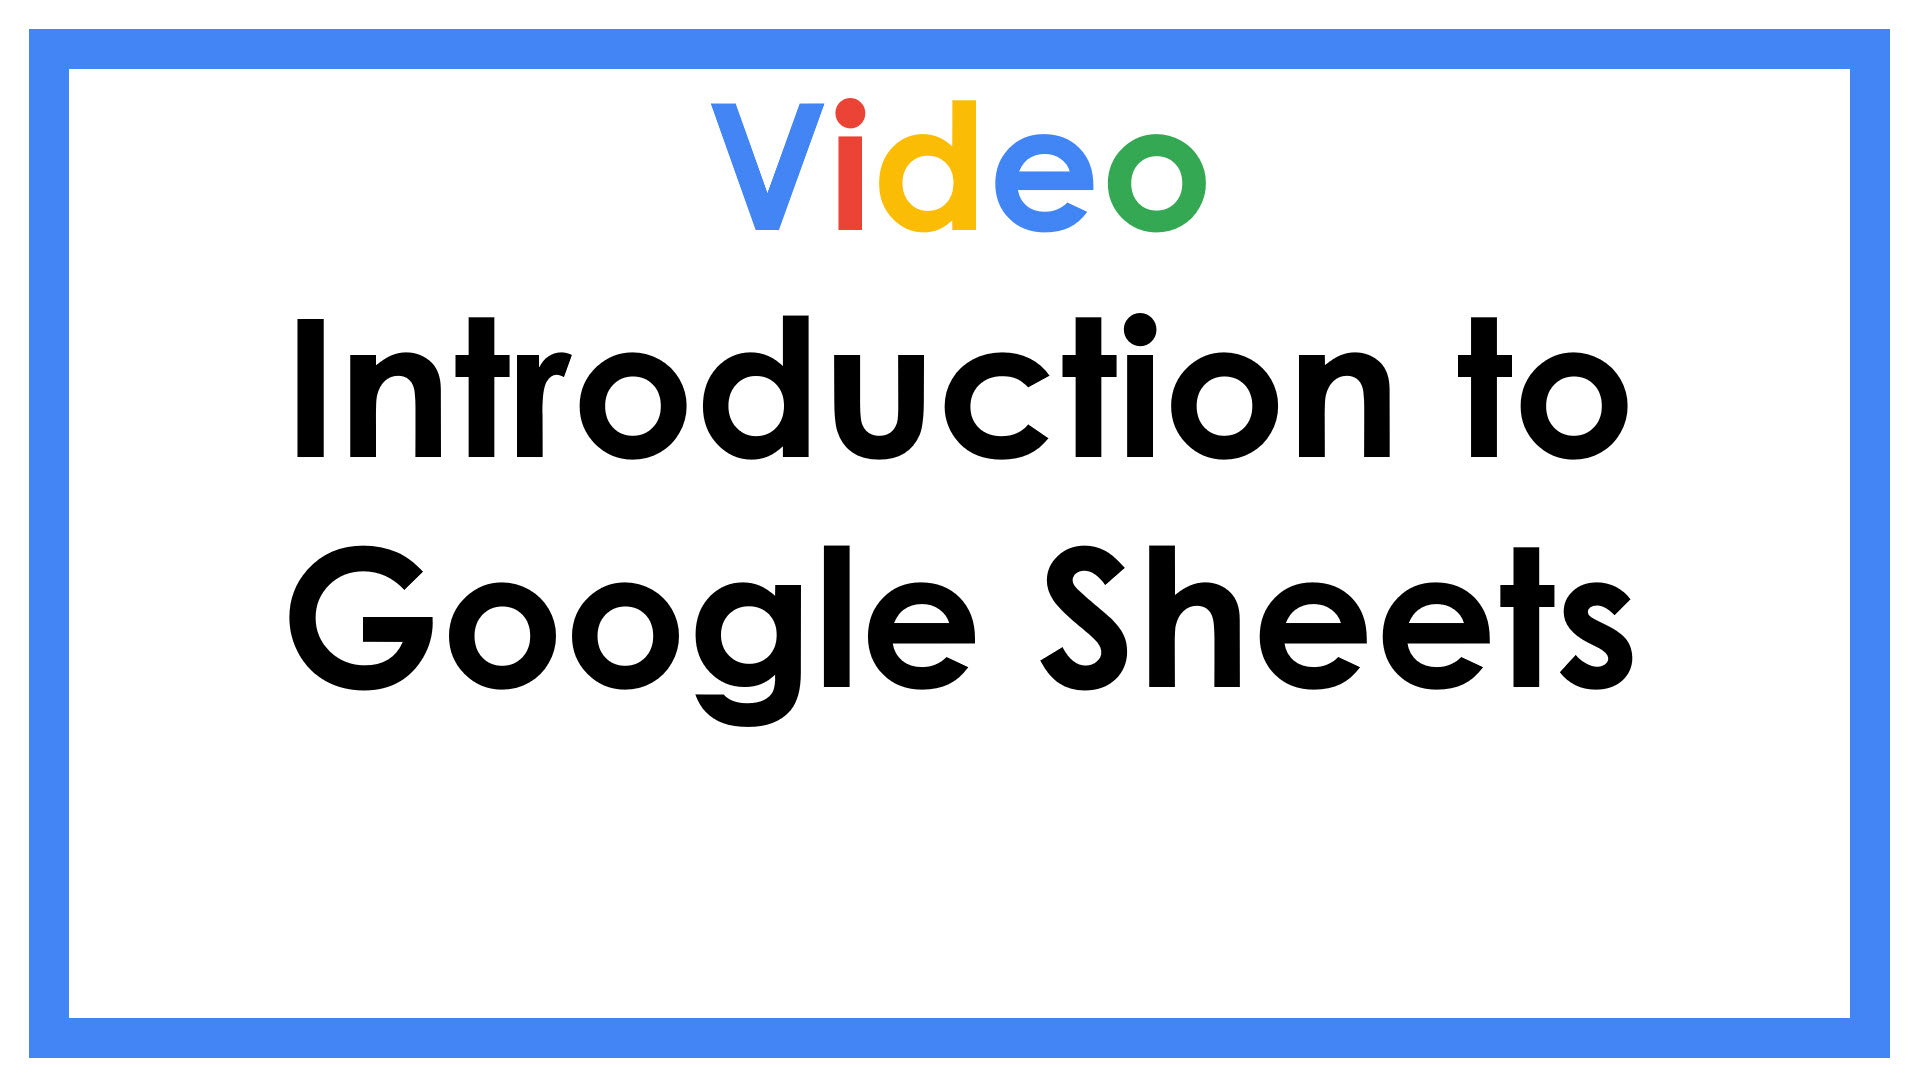 Introduction to Google Sheets